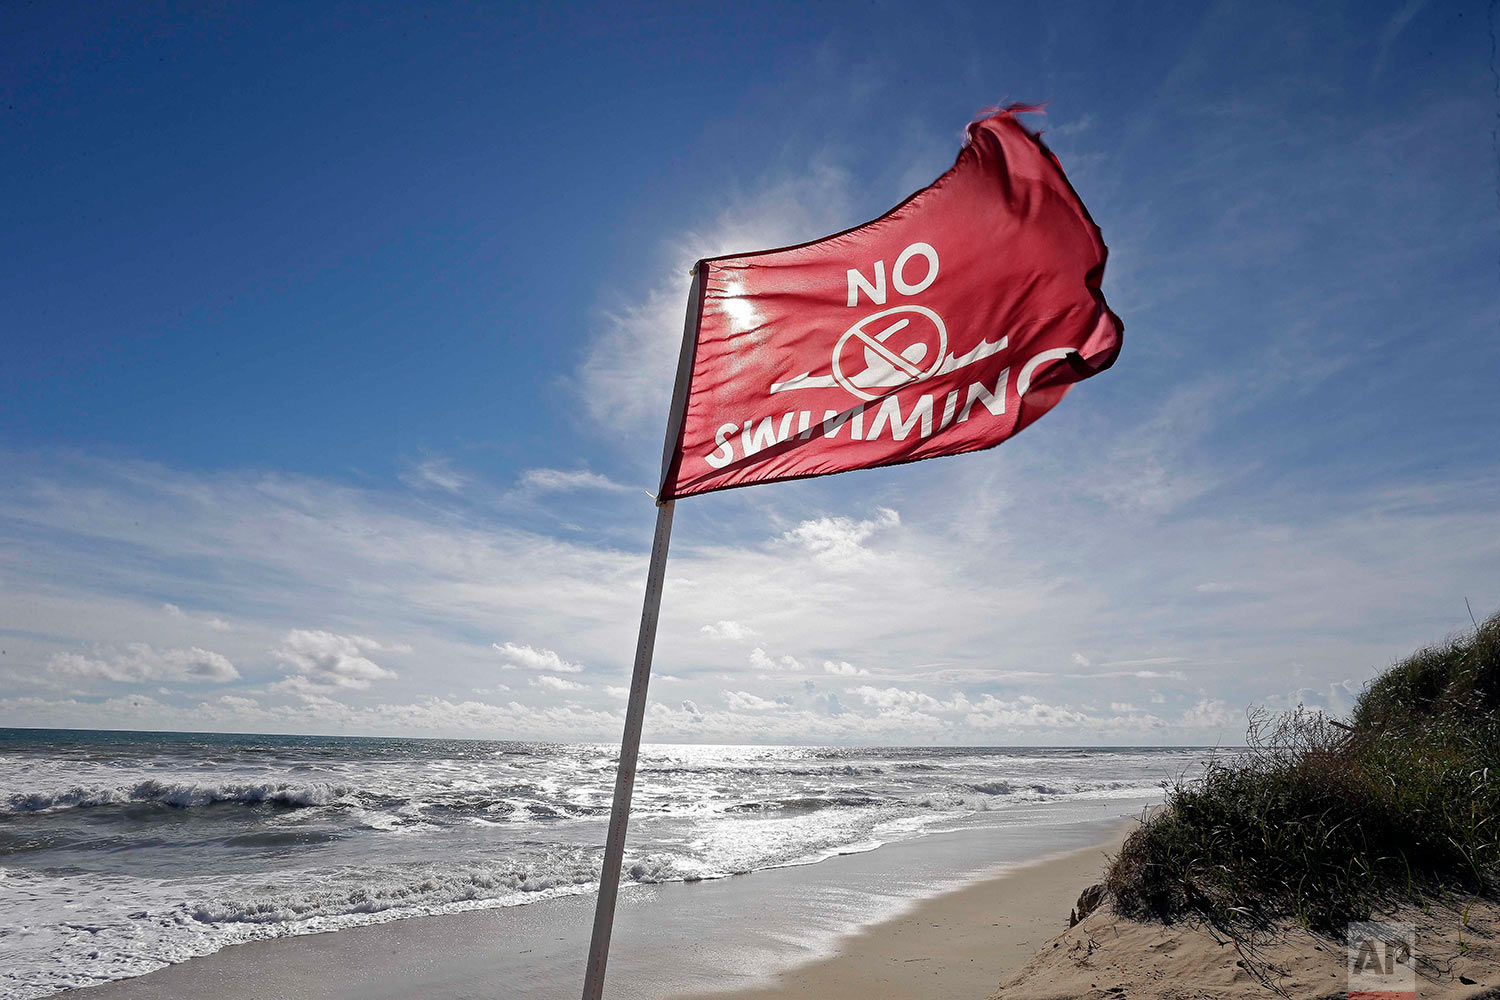 """A warning flag flies in the gusty wind near Nags Head, N.C., Wednesday, Sept. 12, 2018 as Hurricane Florence approaches the coast of the Carolinas. The National Weather Service says Florence """"will likely be the storm of a lifetime for portions of the Carolina coast.""""(AP Photo/Gerry Broome)"""